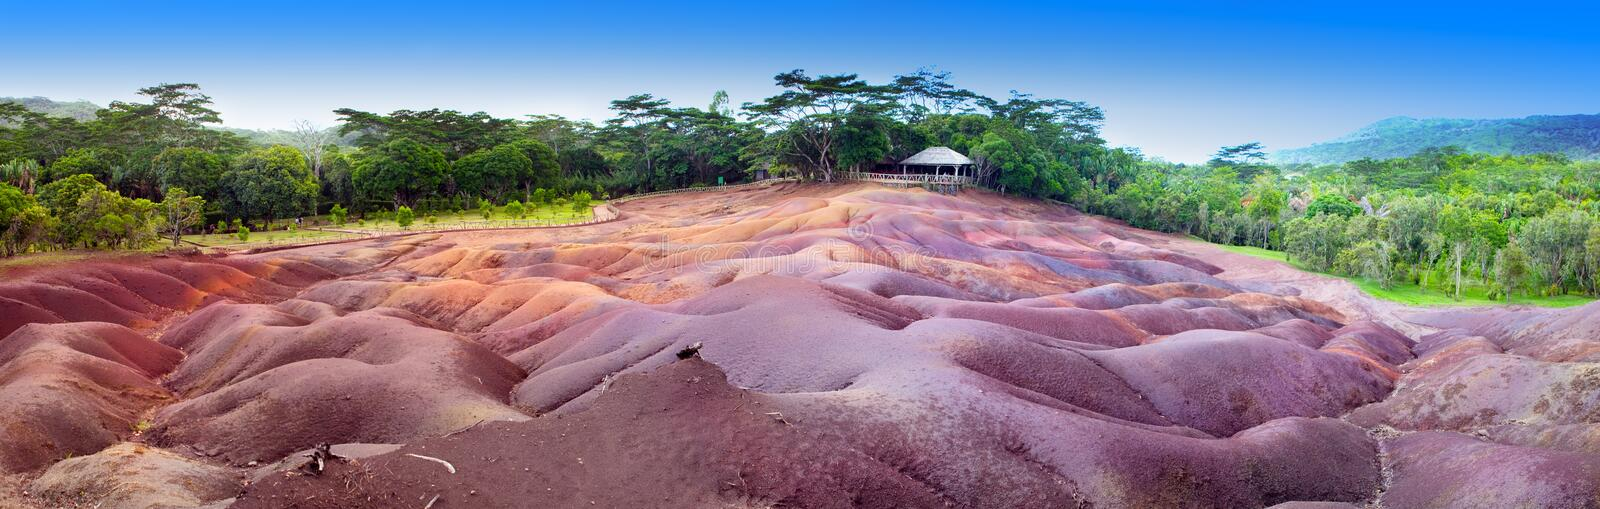 Famous tourist place of Mauritius - earth of seven colors, panorama royalty free stock photo